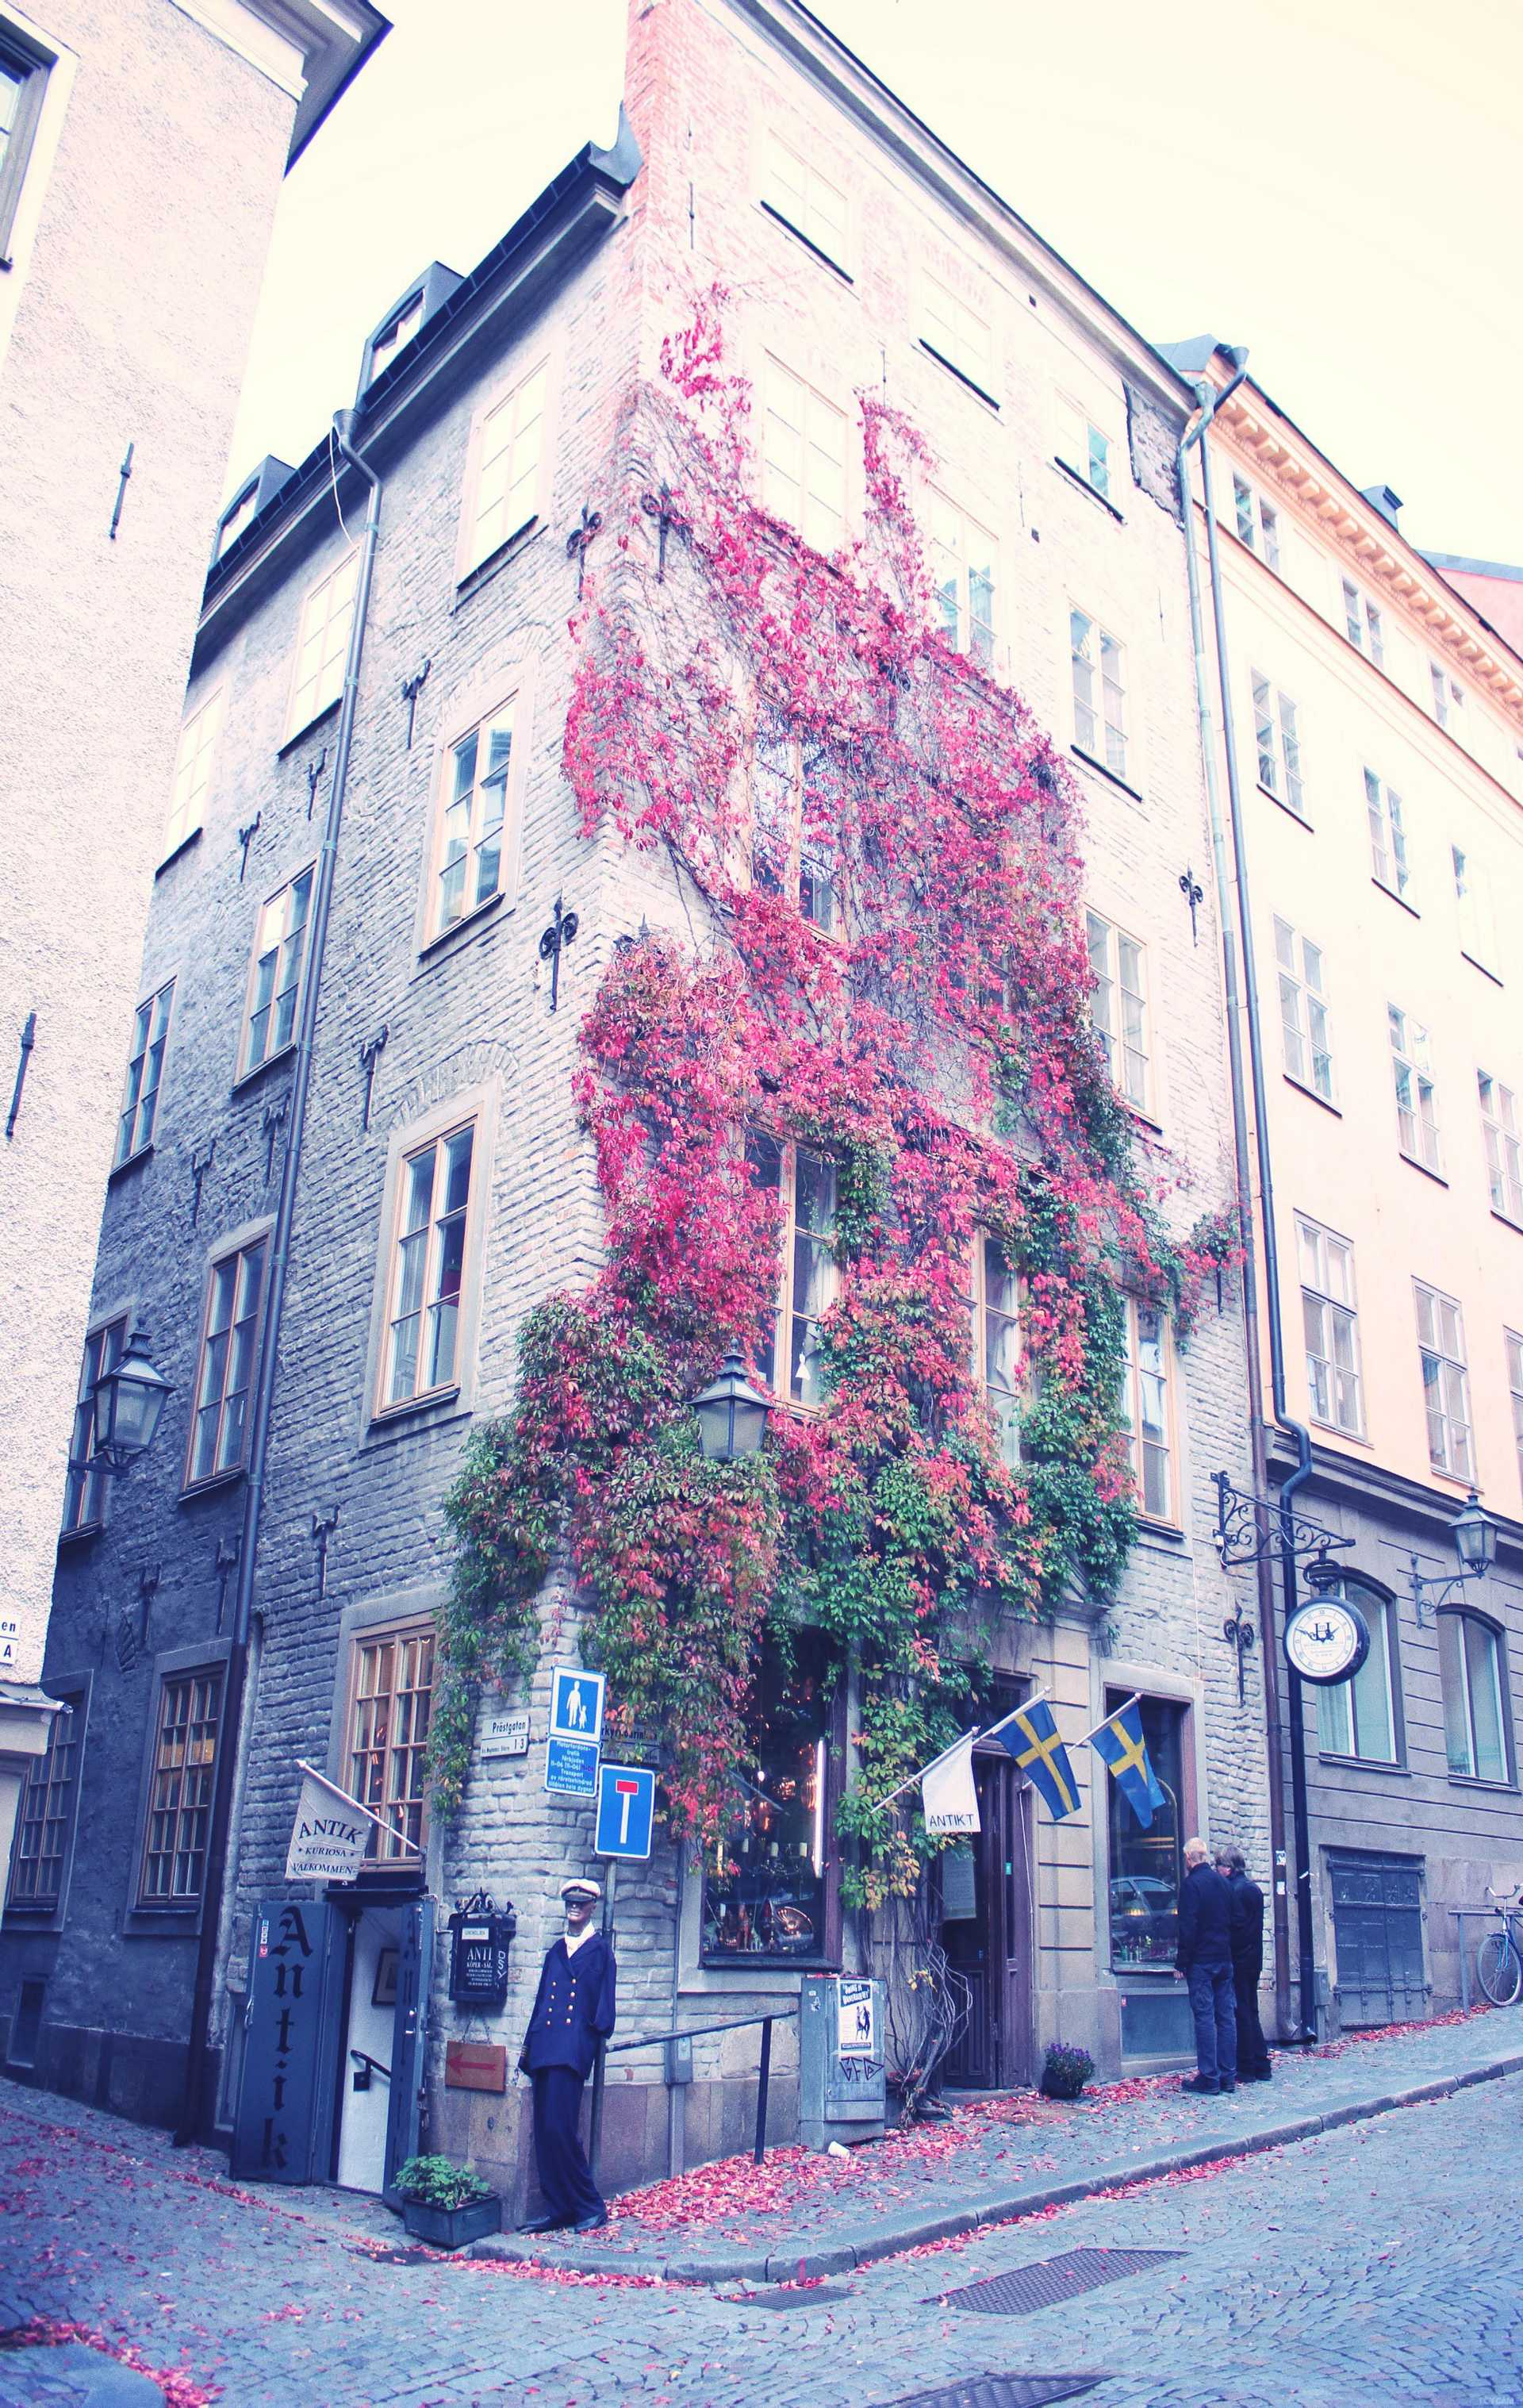 Stockholm-day-2-visit-europe-nunaavane-haircare-beauty-blogger8.JPG_effected